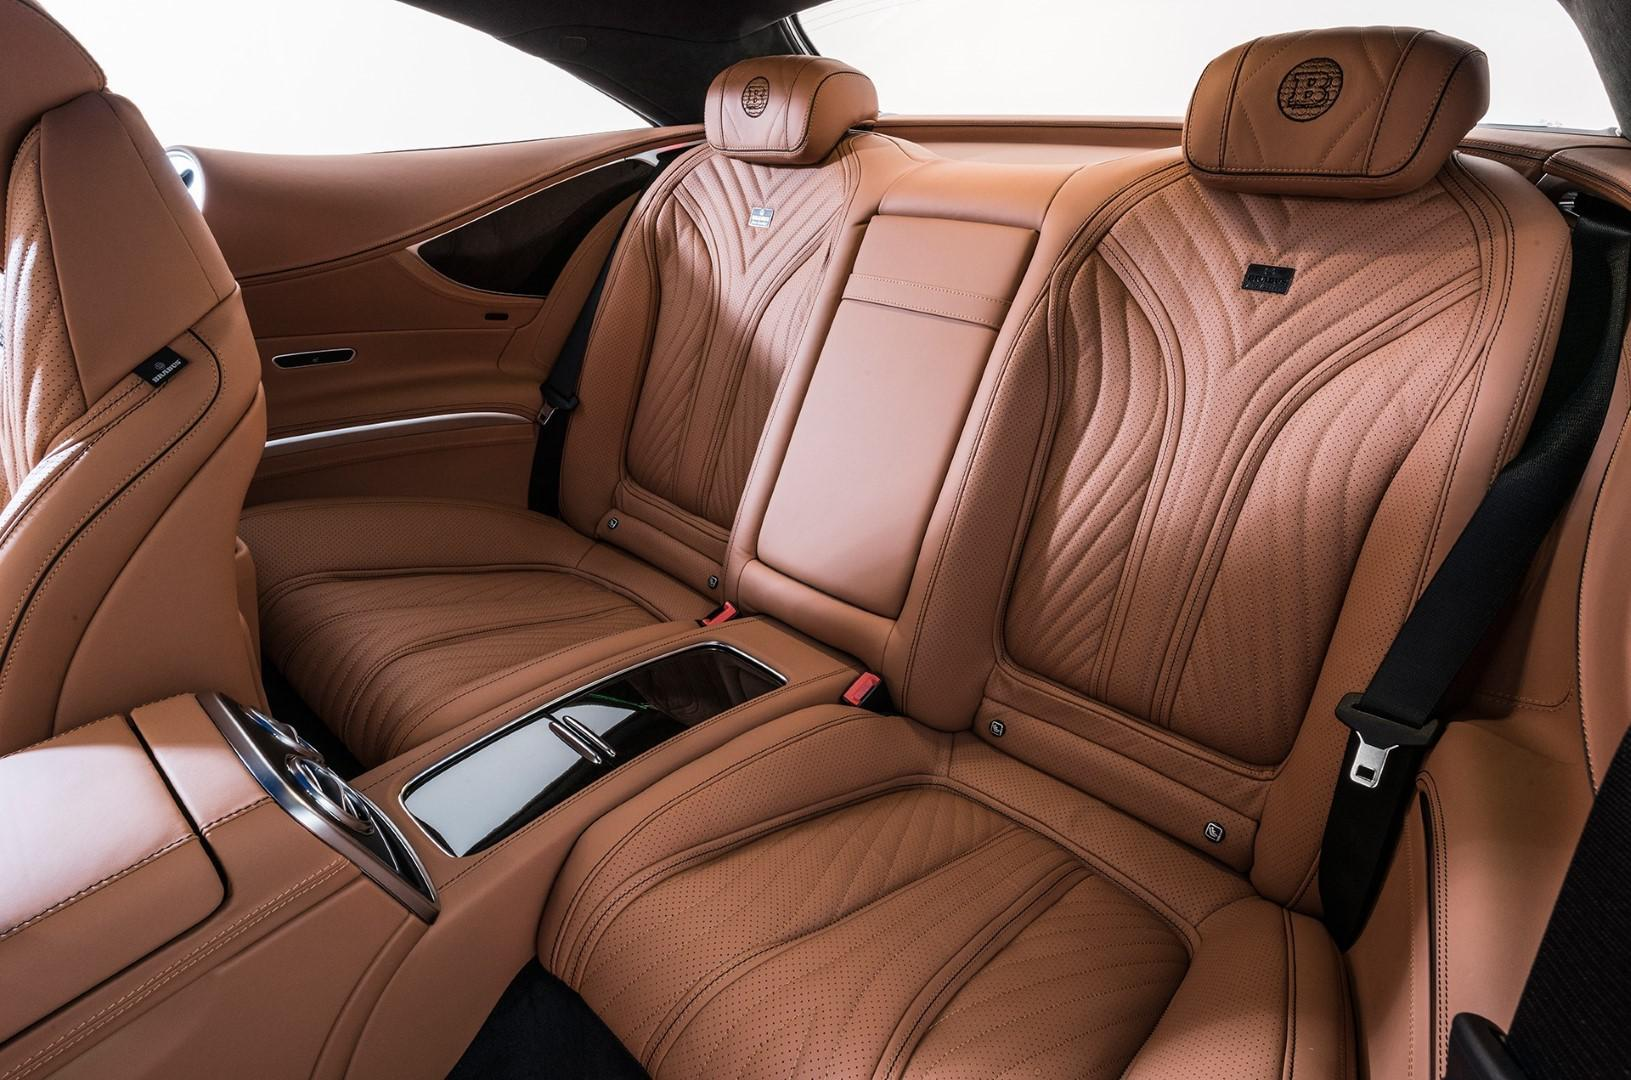 brabus-800-performance-mercedes-benz-s63-4matic-coupe-803-6.jpg